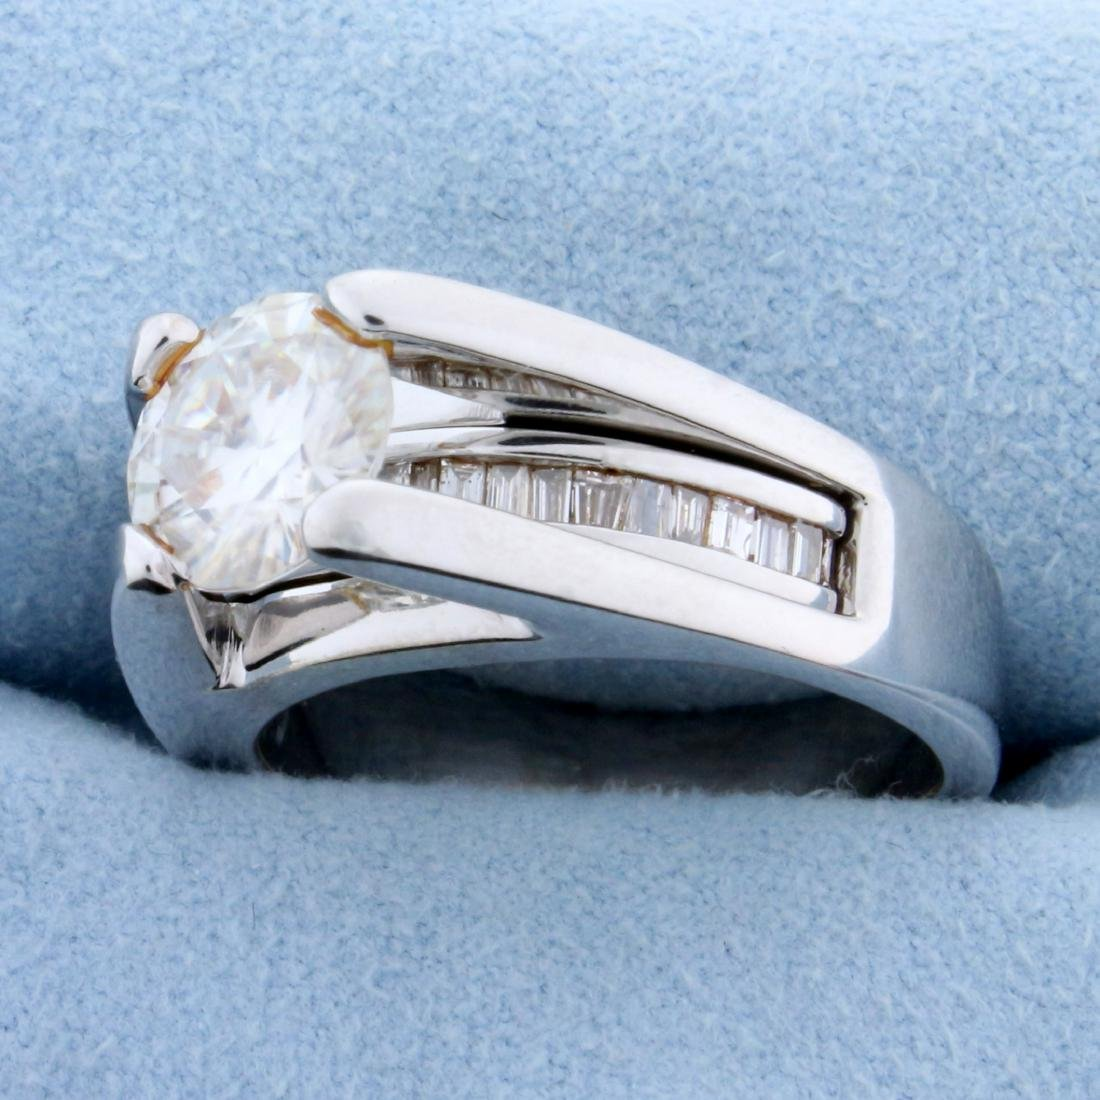 Over 2ct TW Diamond Engagement Ring in 14k White Gold - 2